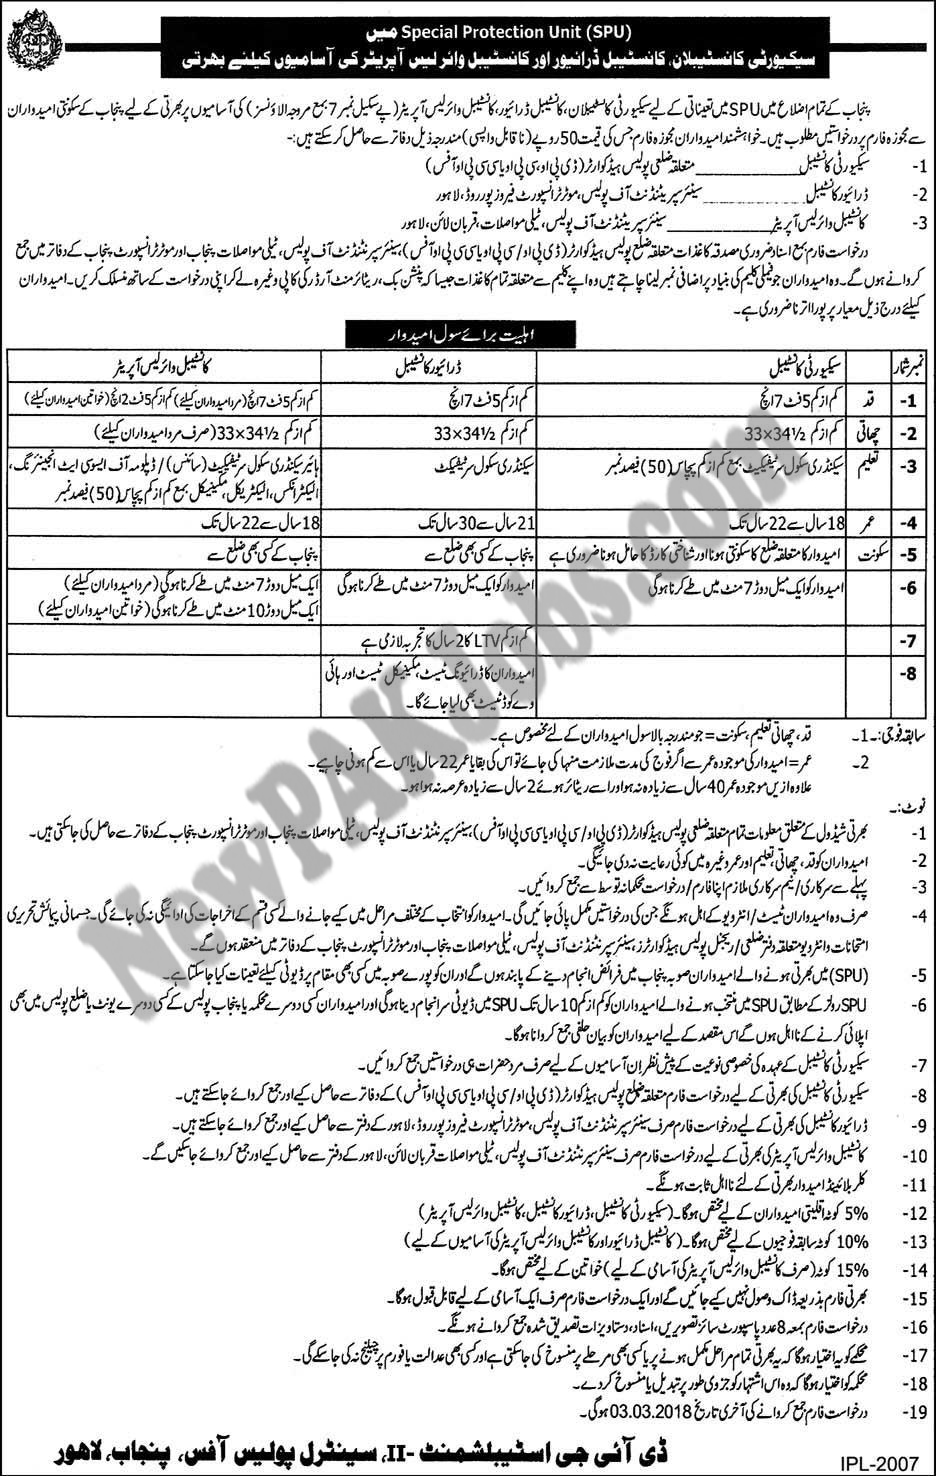 Punjab Police Special Protection Unit for Security Constable, Drivers, Constable Wireless Operator February 2018